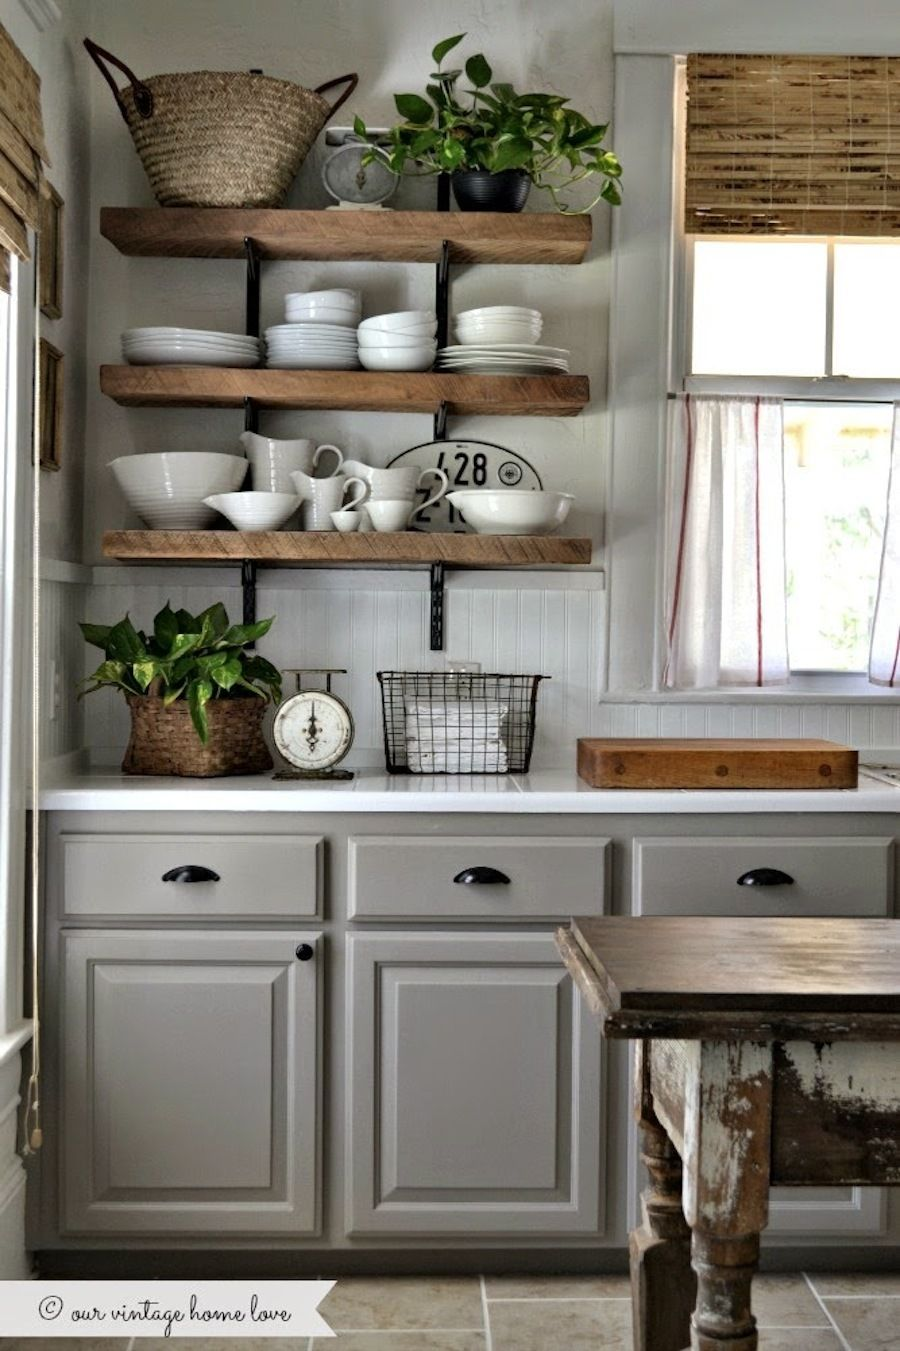 View entire slideshow: 15+Stunning+Gray+Kitchens on http://www.stylemepretty.com/collection/277/